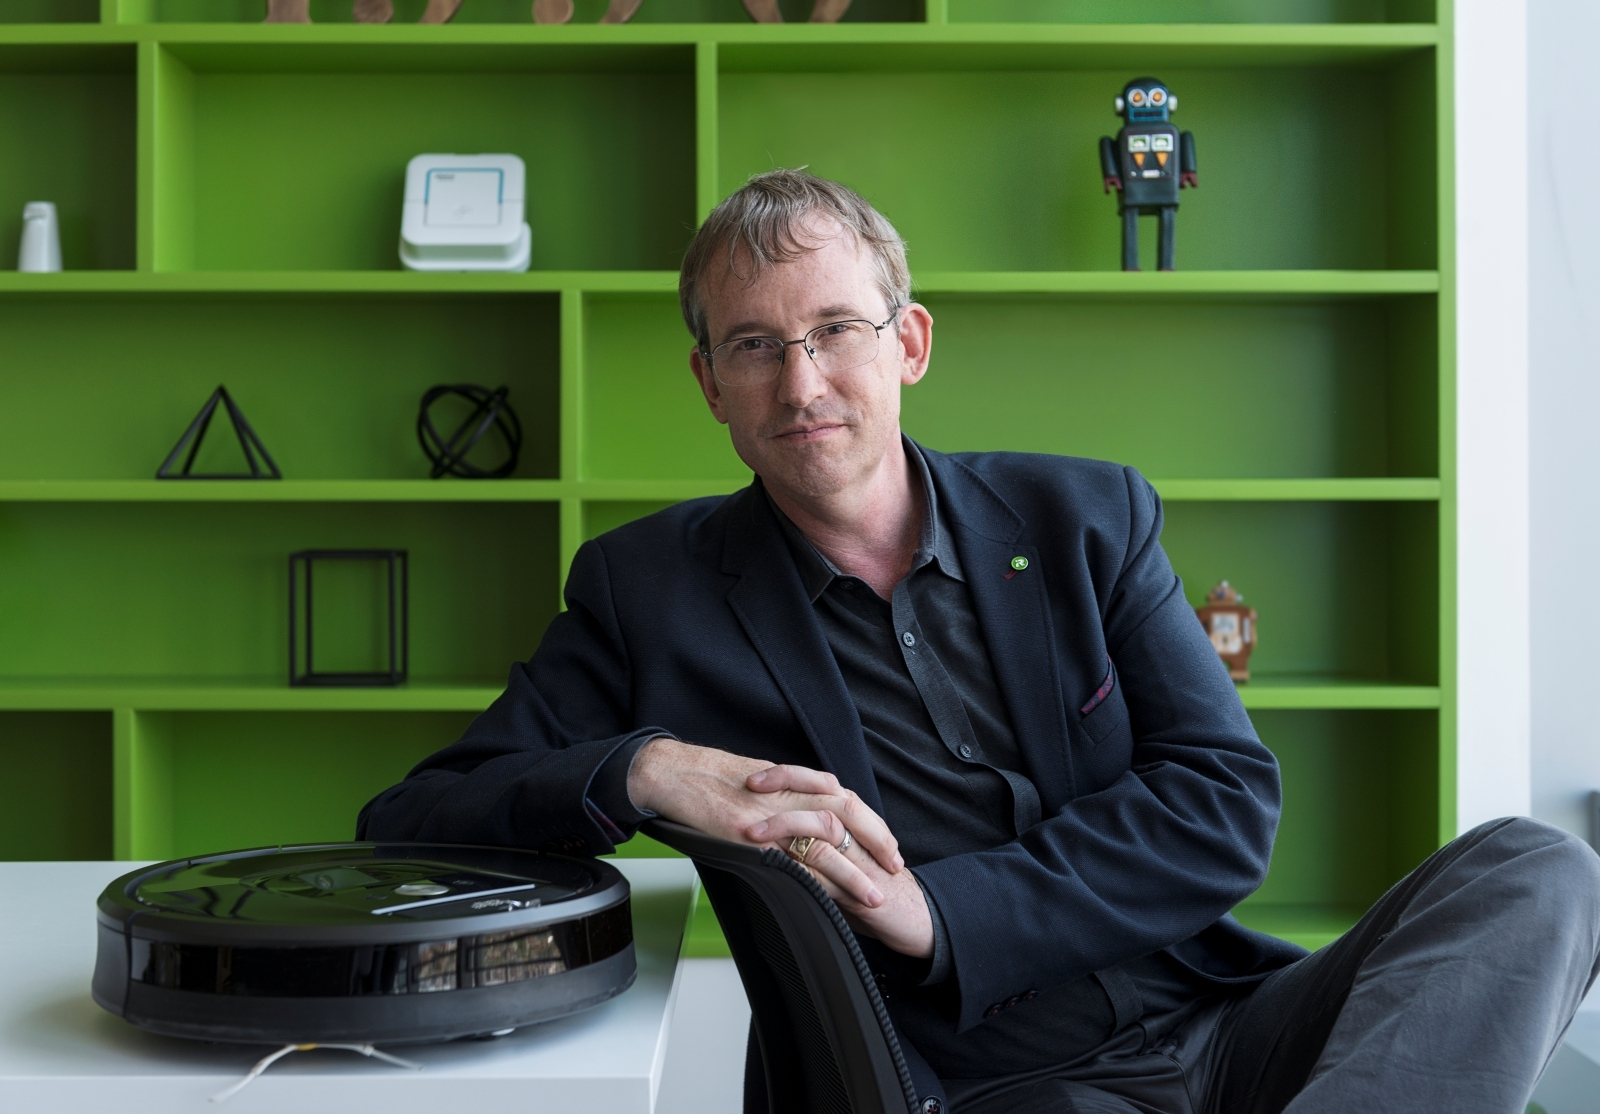 Roomba Maker iRobot Going to Sell the Digital Maps of Your Home